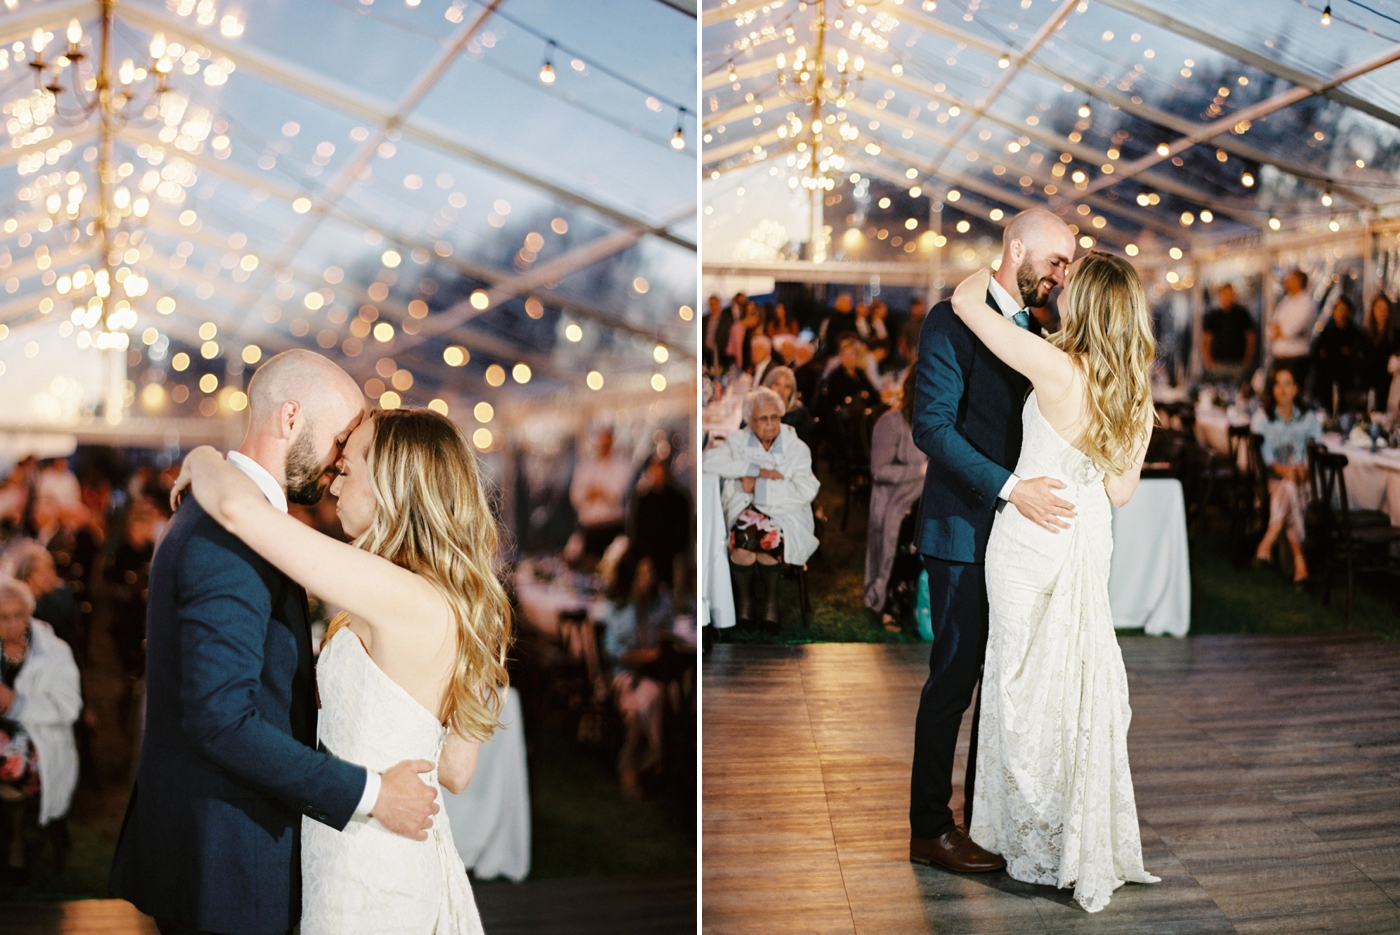 Calgary wedding photographers | The Gathered Farm Wedding | Justine milton fine art film photographer | clear tent wedding reception first dances